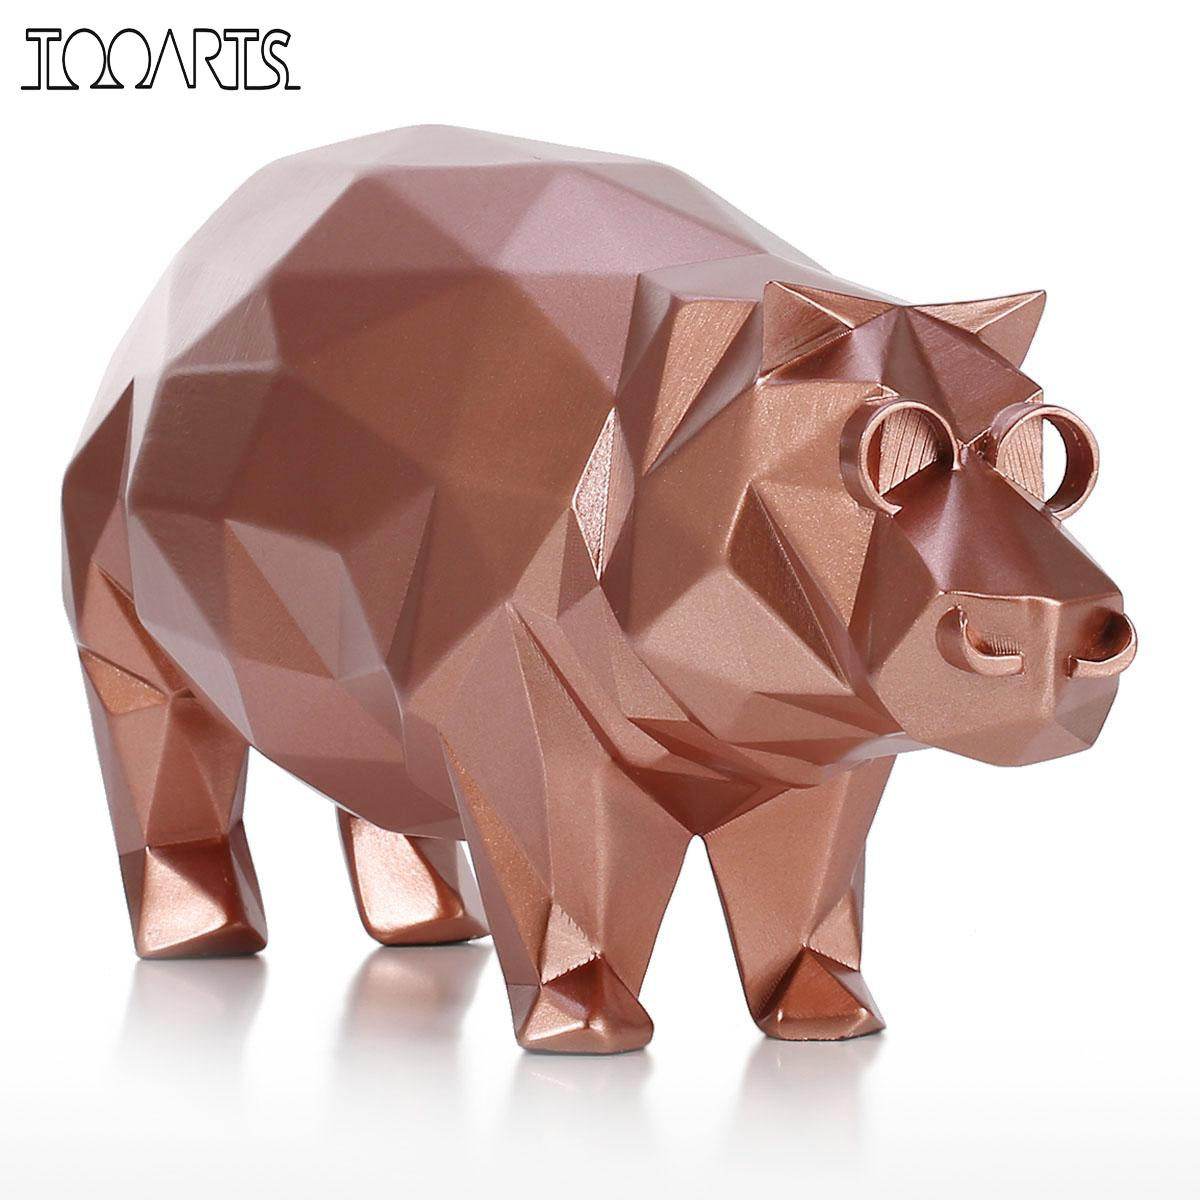 Home Decoration Statues Tooarts Tomfeel Hippo Modern Sculpture Resin Sculpture